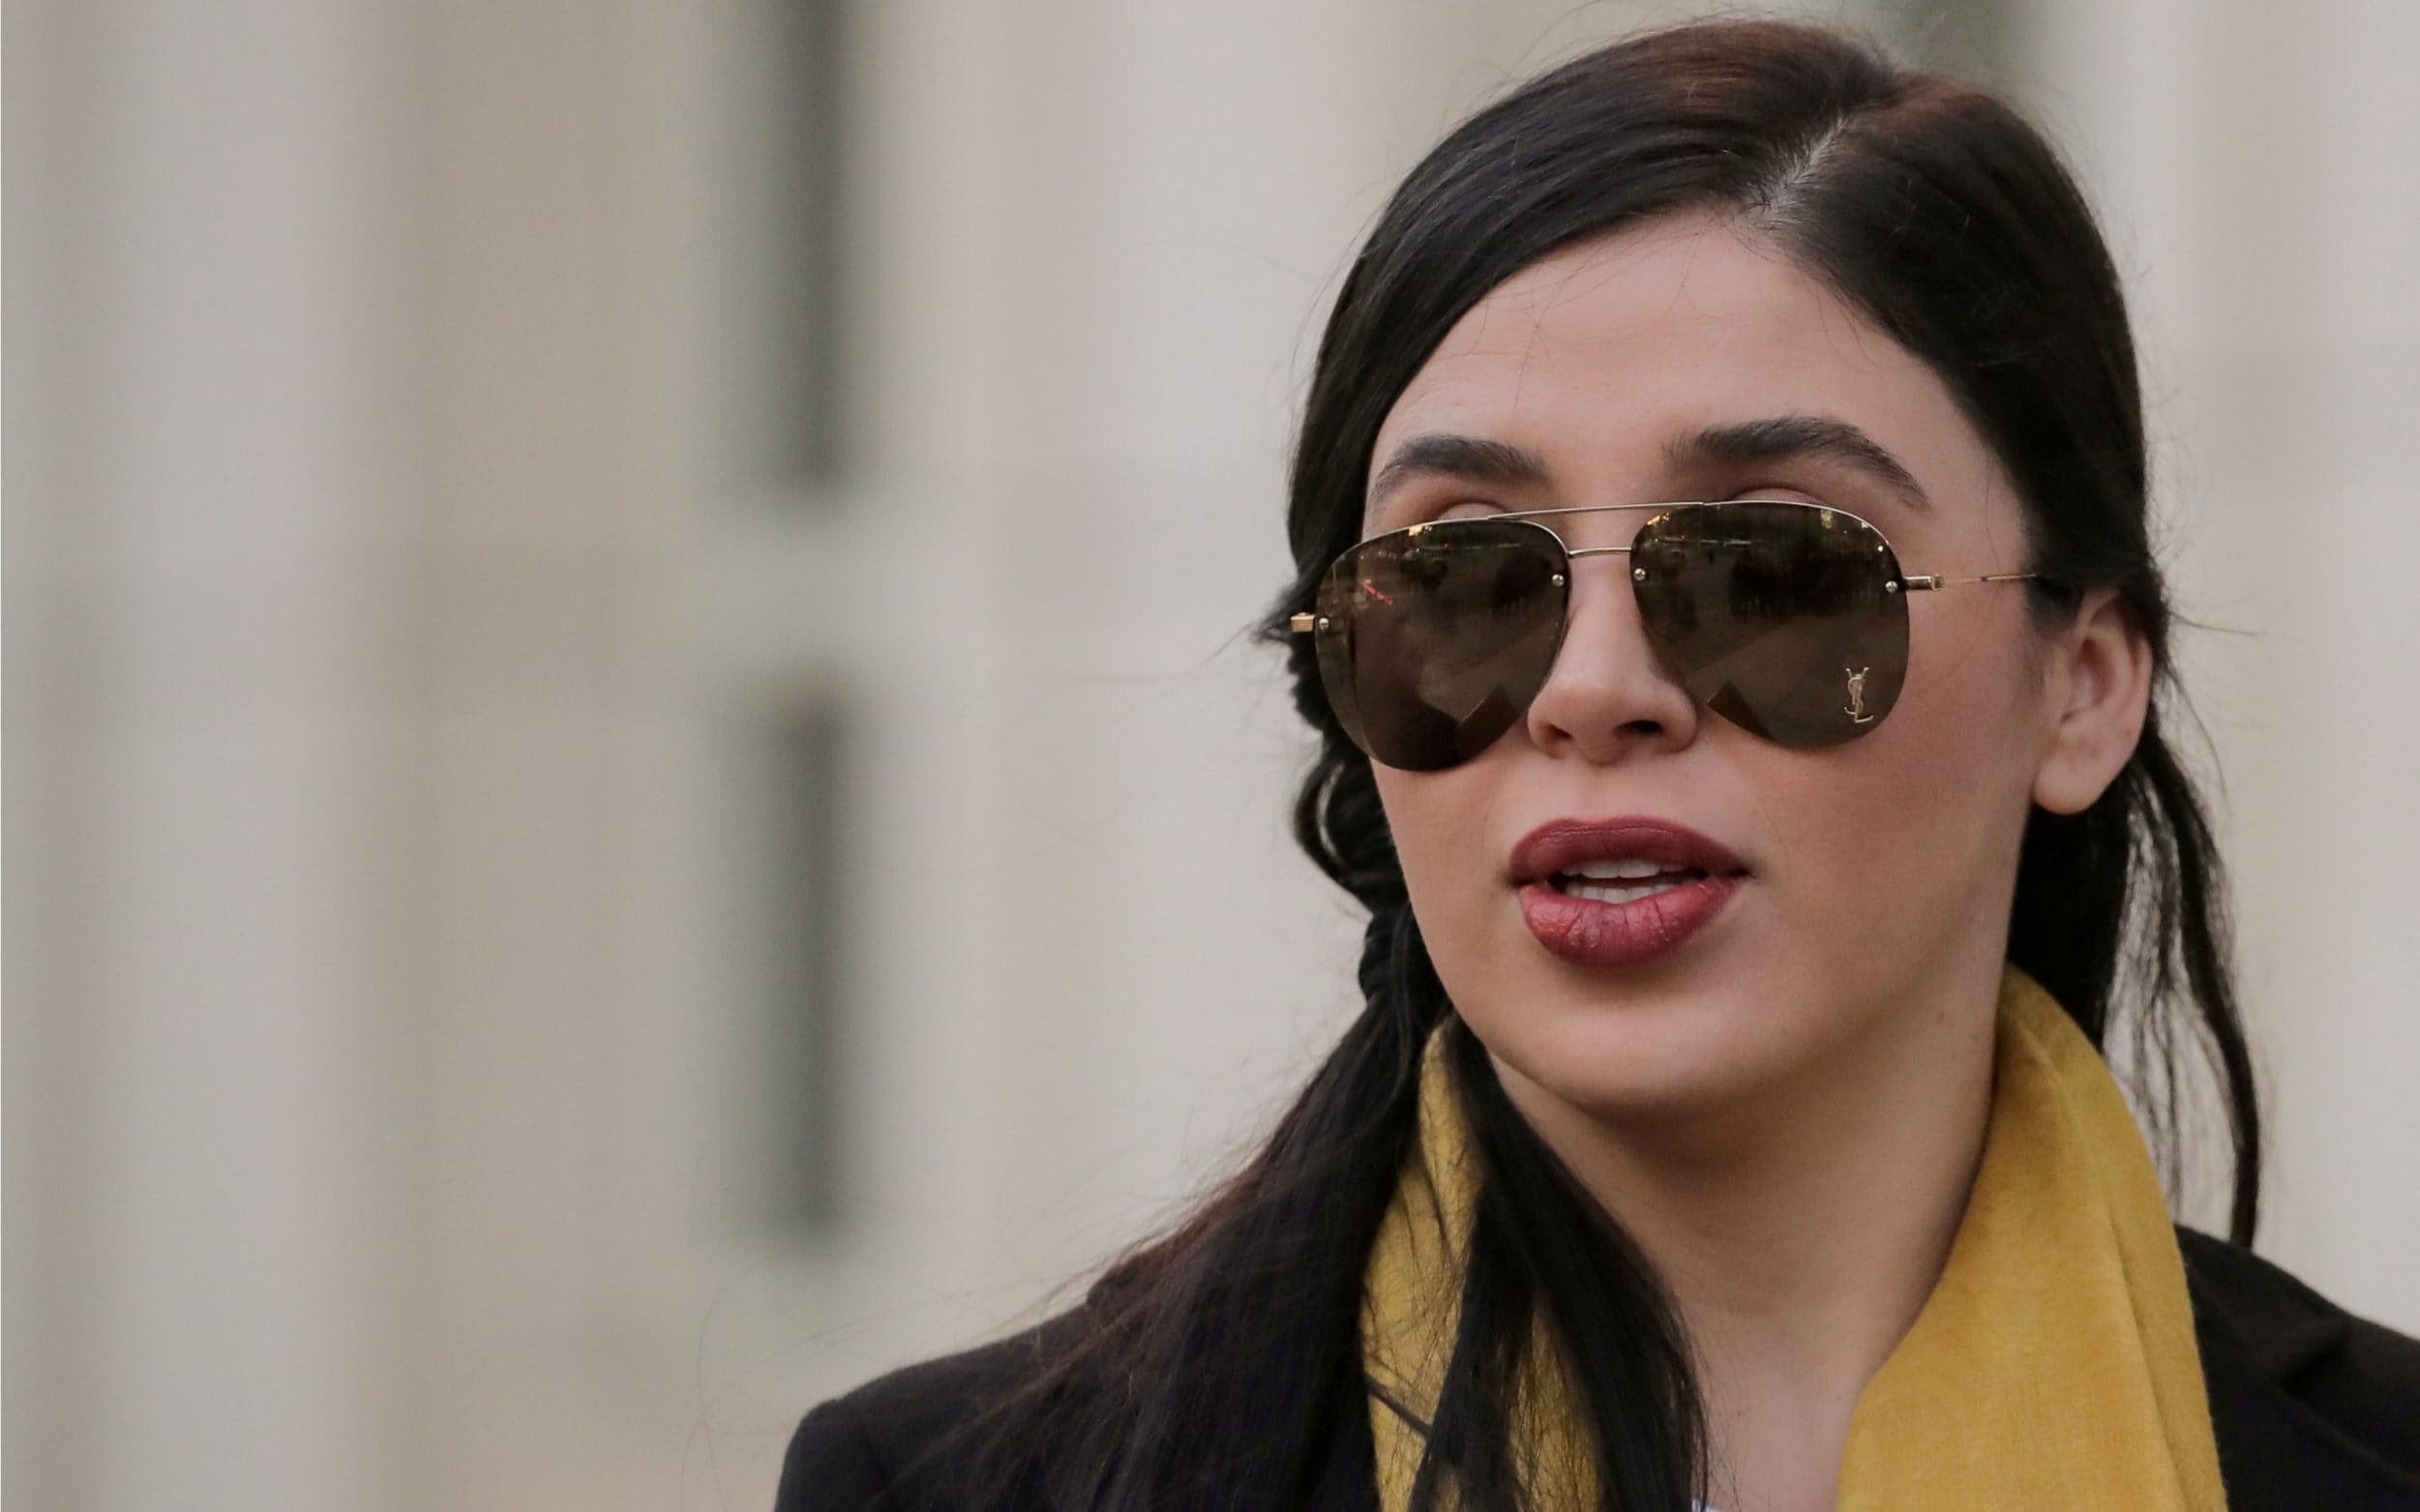 El Chapo's wife facing life in prison and $10m fine as she is ordered to remain in US jail